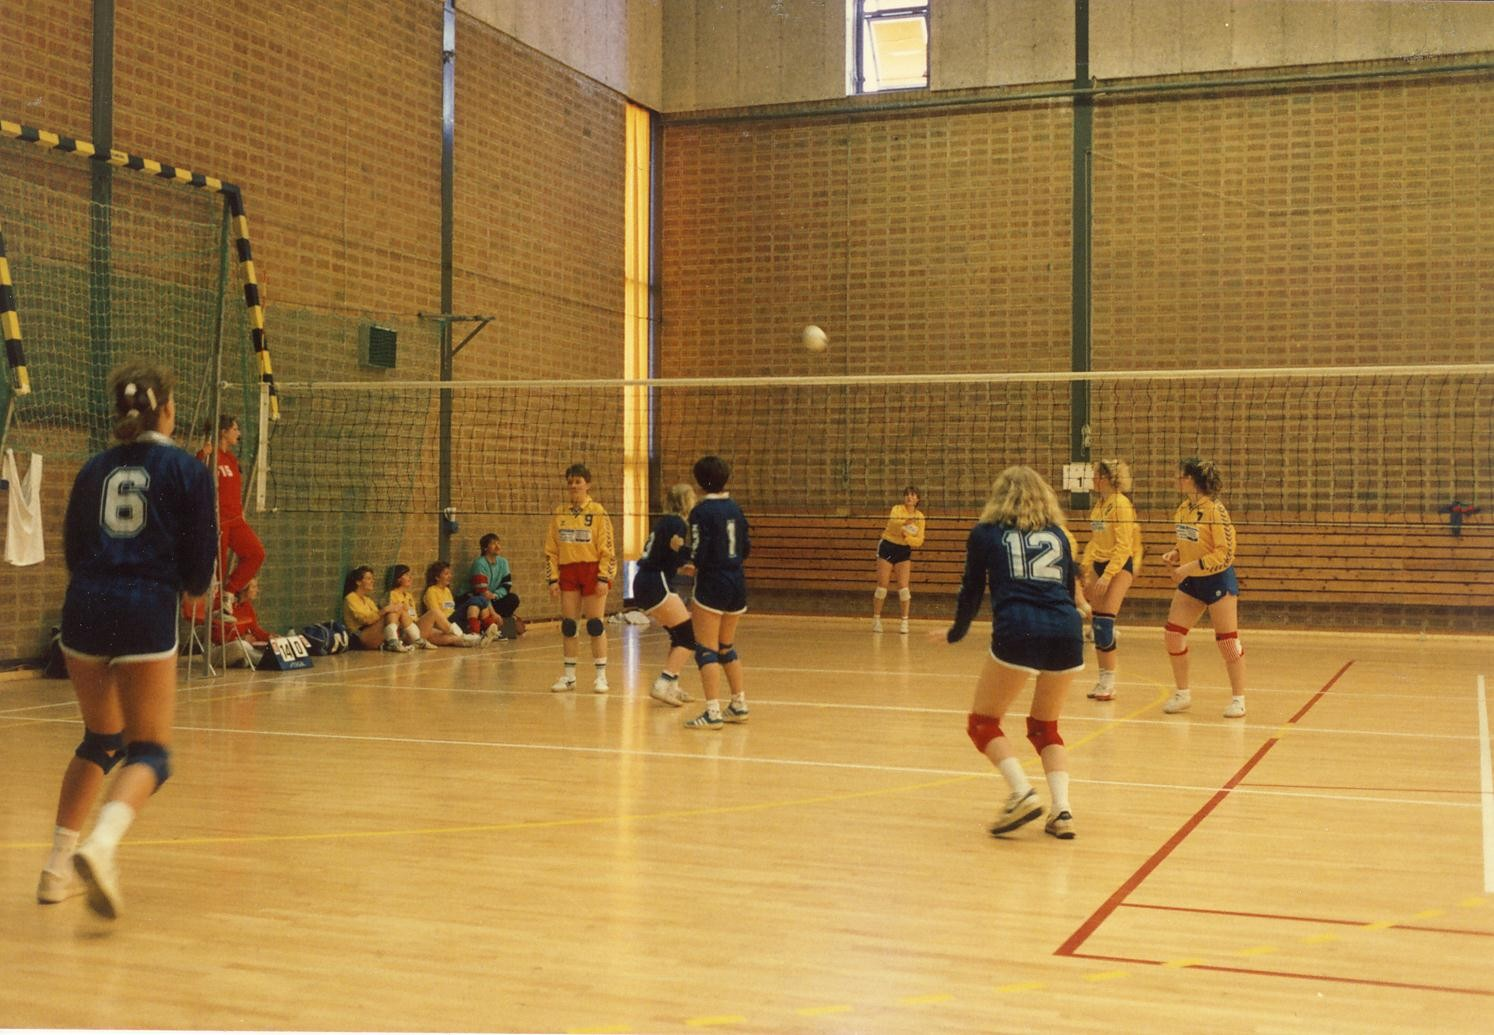 Scan12968 VOLLEY I SVERIGE 07-05-88